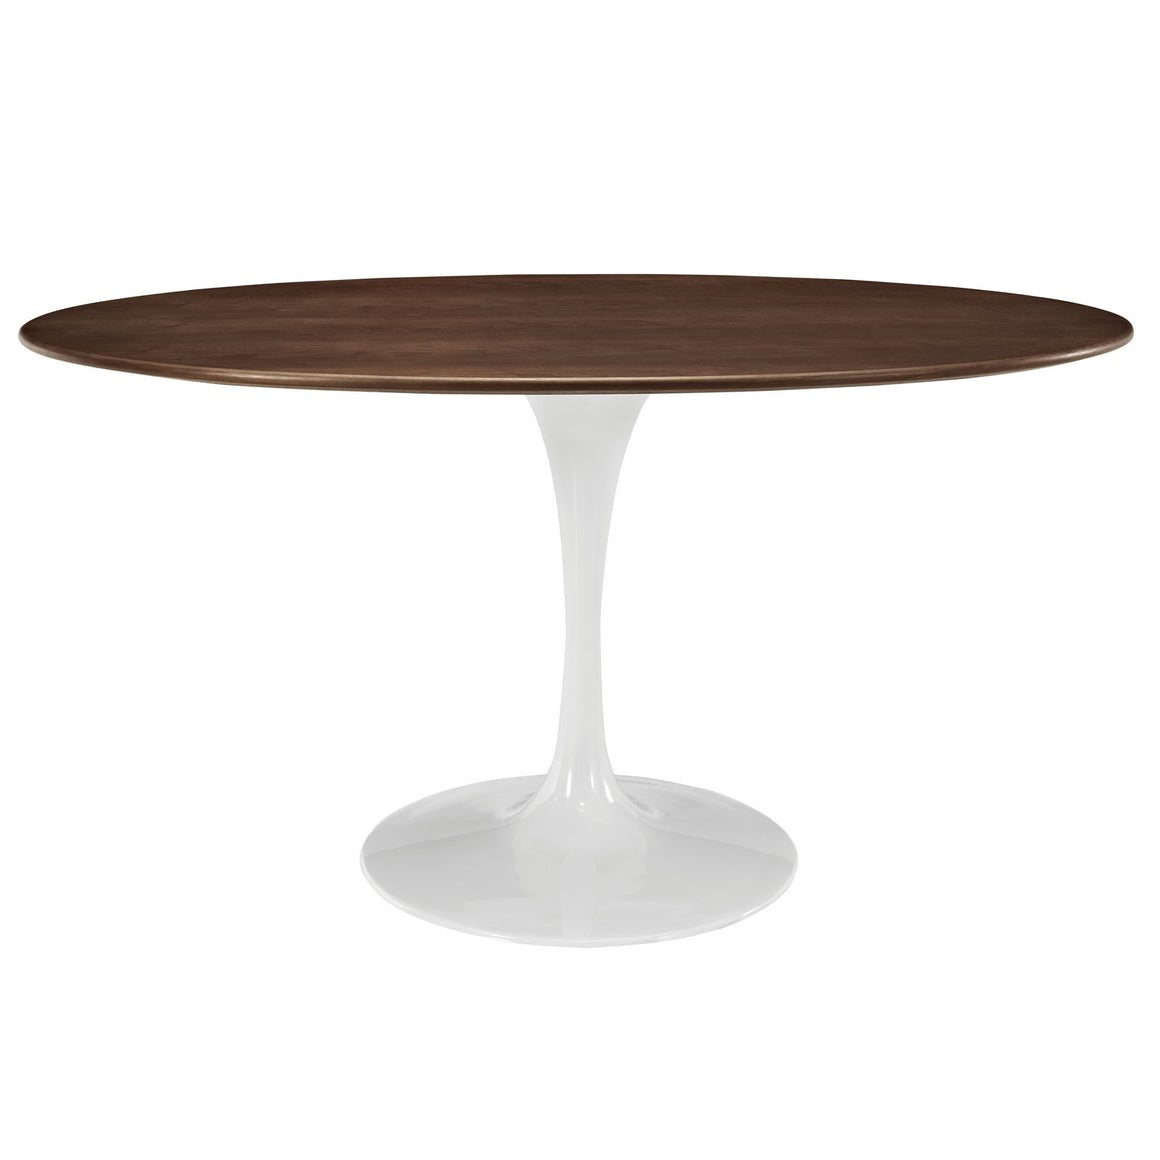 "Lippa 60"" Oval-Shaped Walnut Dining Table"